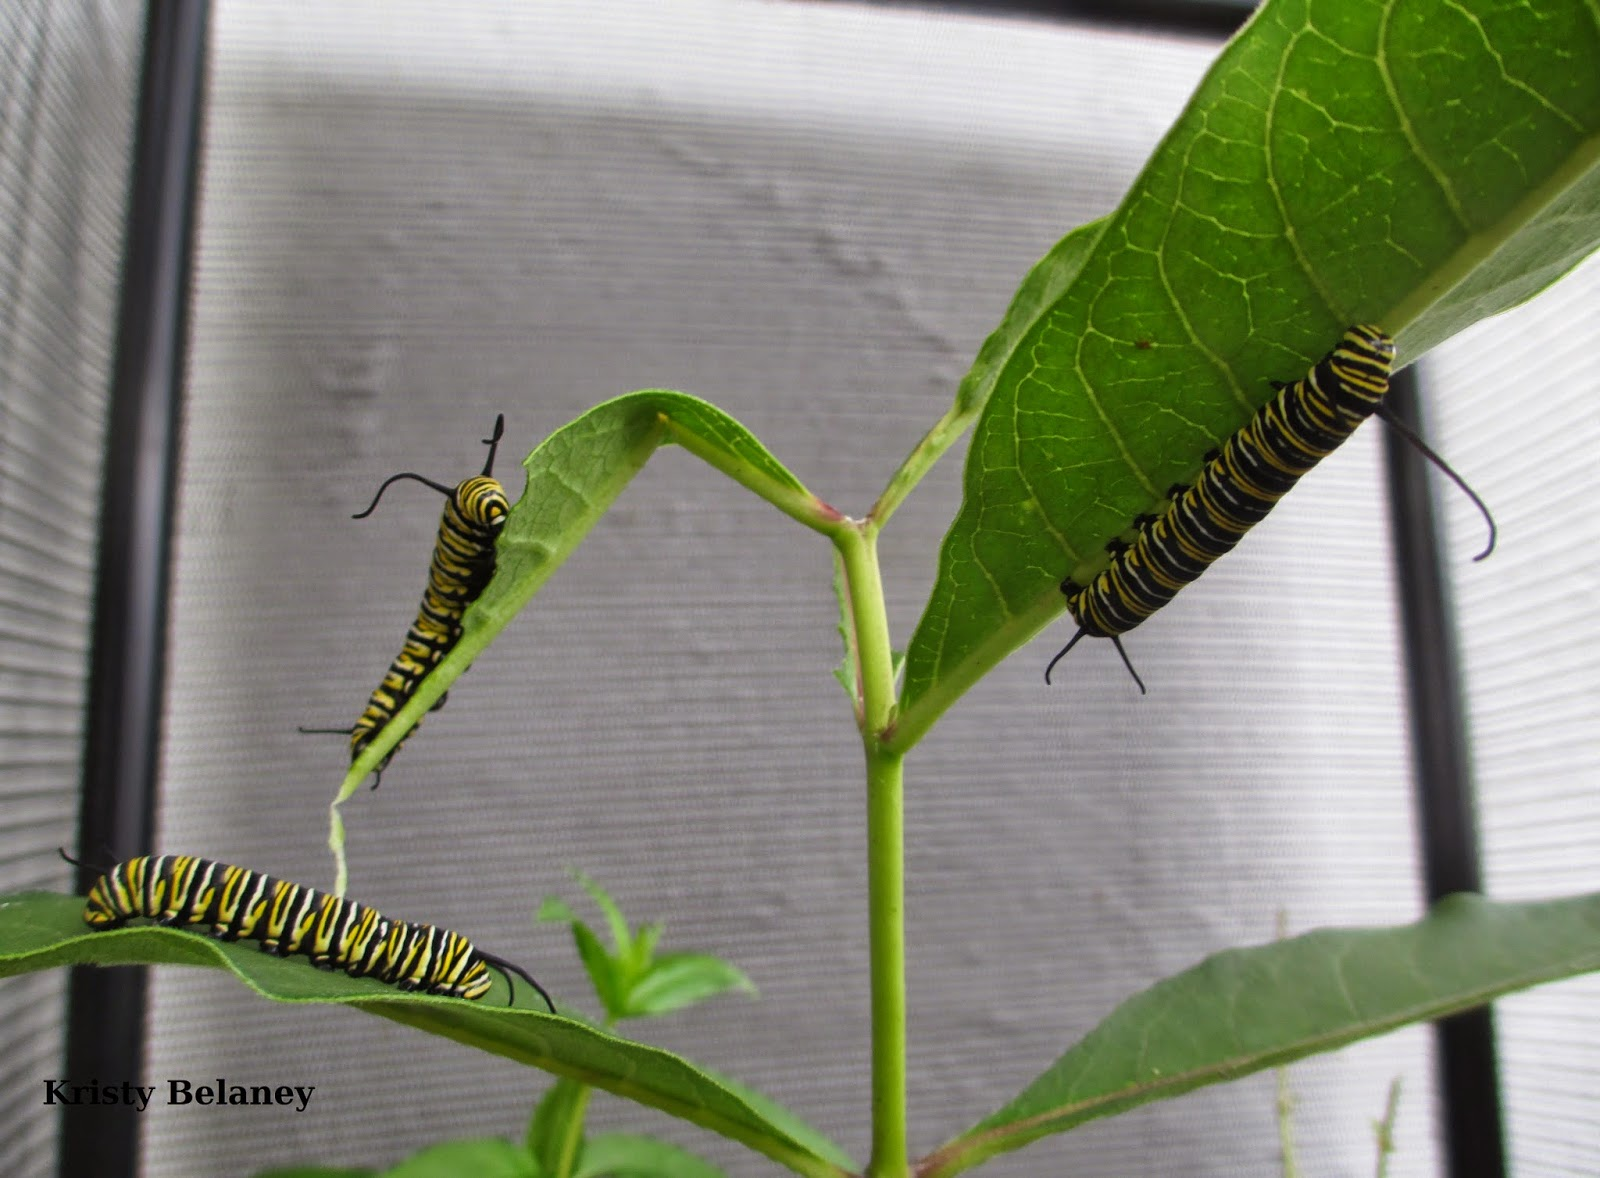 Numerous Monarch caterpillars munching on milkweed